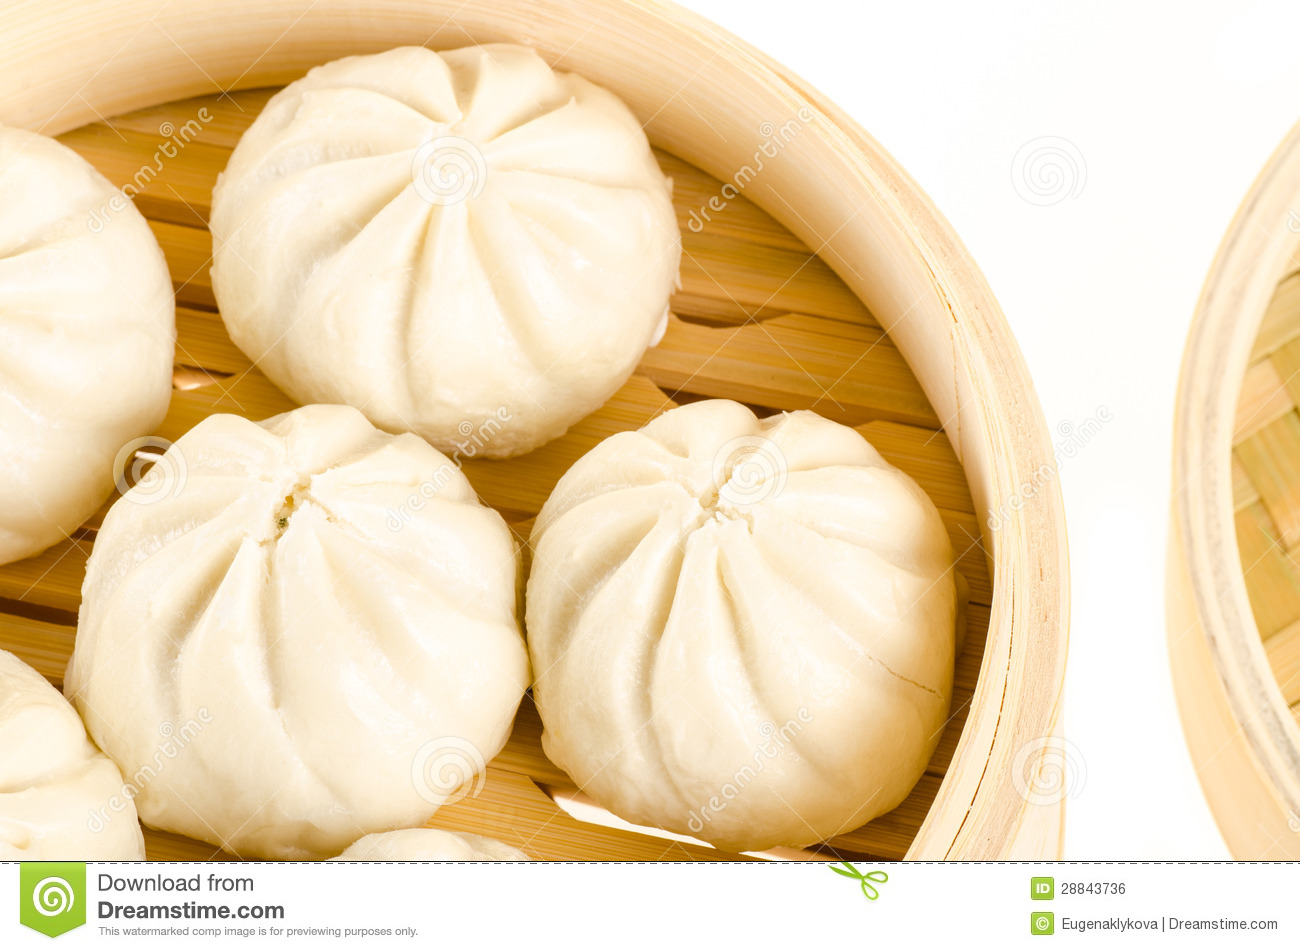 Chinese steamed buns in bamboo steamer basket isolated on white.